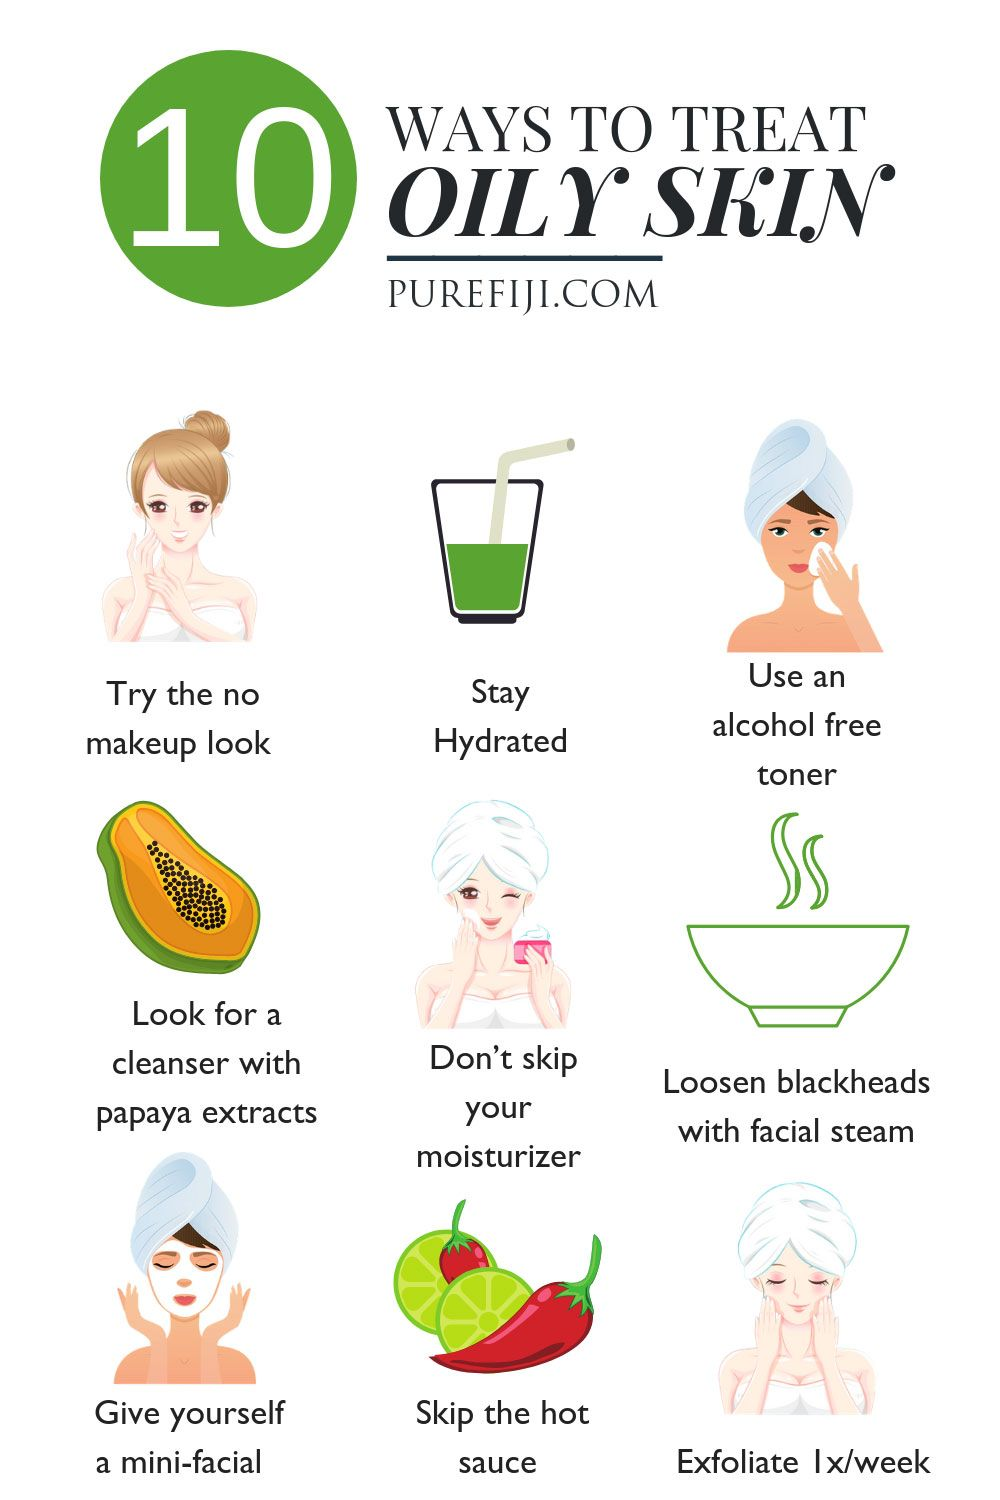 Skin Care Routine And Natural Remedies For Oily Skin Treating Oily Skin Oily Skin Care Routine Oily Skin Remedy